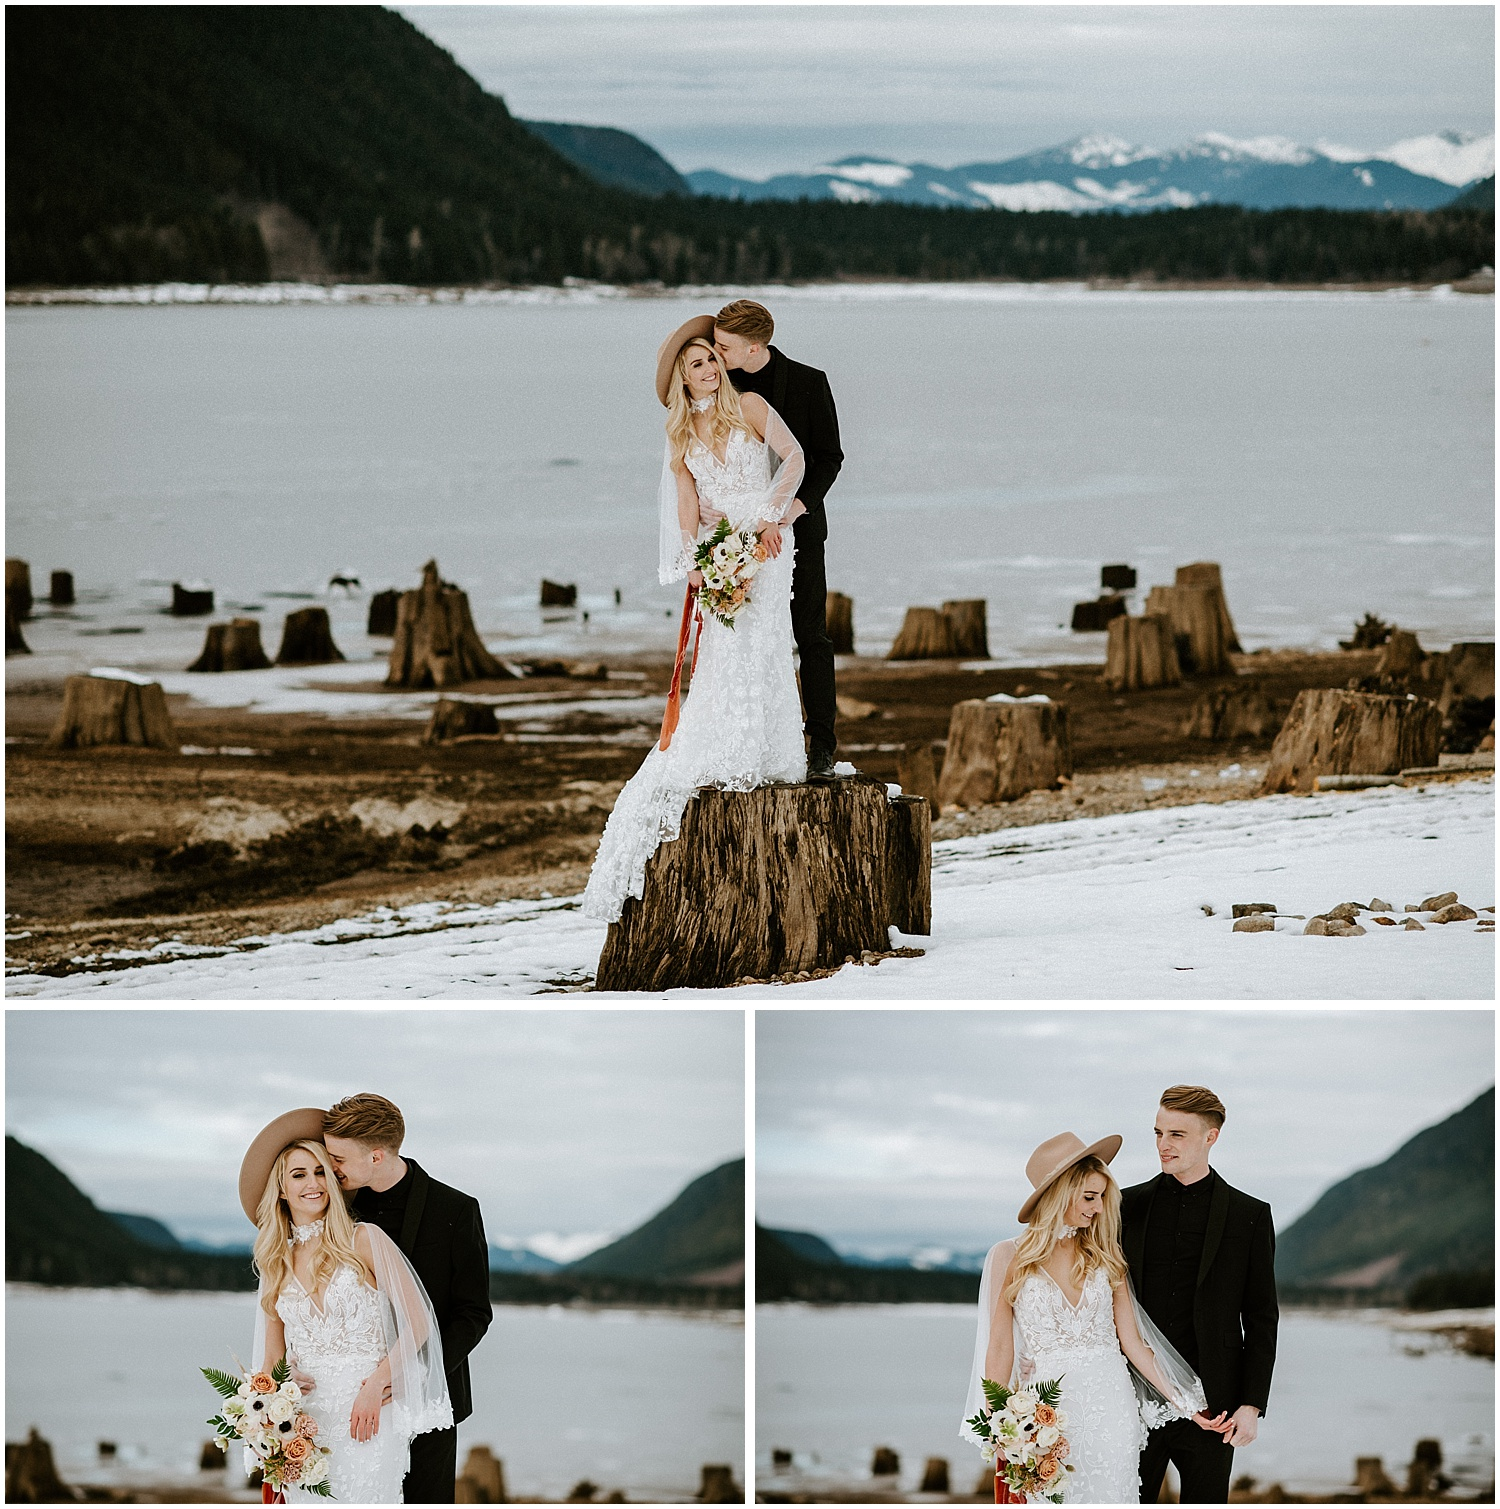 Jones_Lake_wedding_winter_elopement_vancouver_photographer_0259.jpg